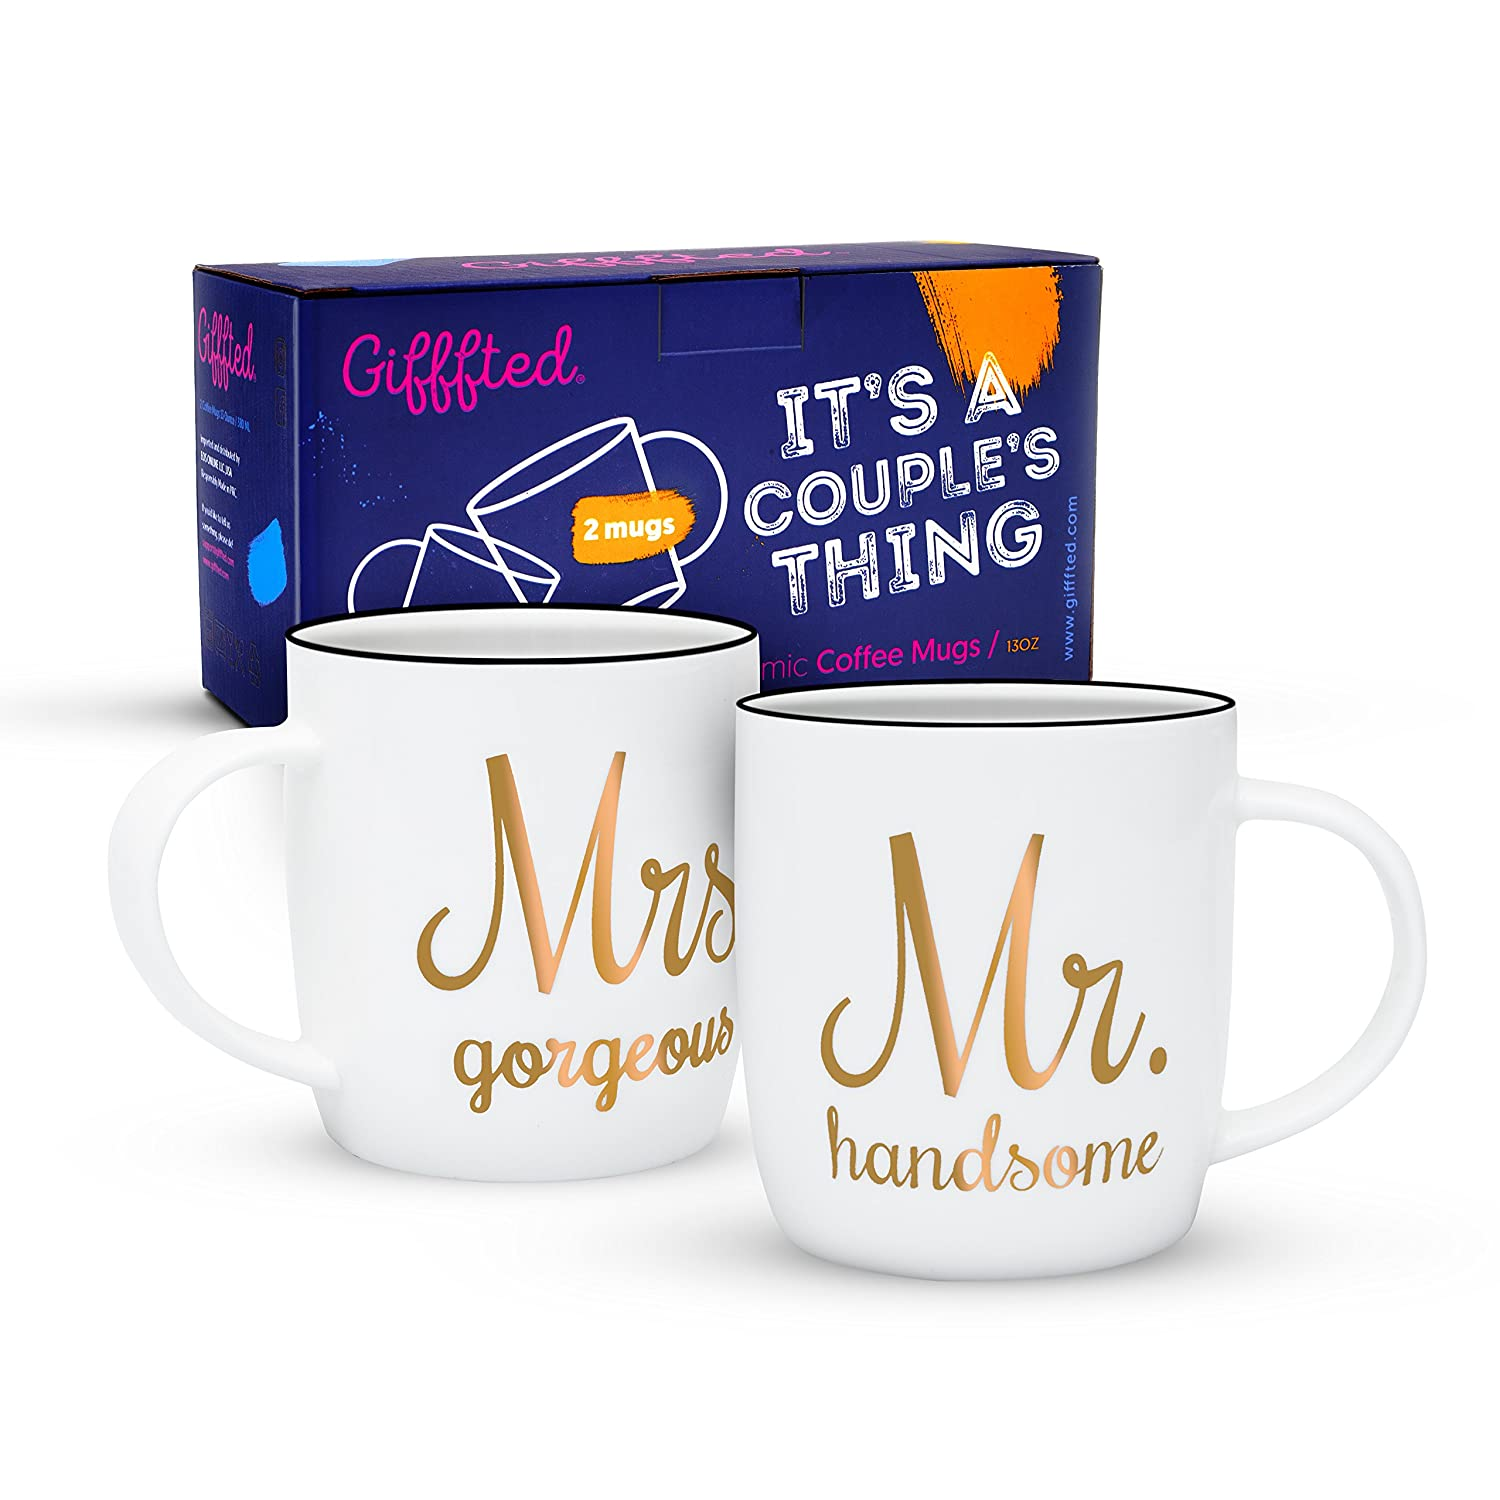 Gifffted Mr Handsome and Mrs Gorgeous Coffee Mugs For Couple, Wedding Anniversary Engagement Gifts For Couples, Bride Groom, Men and Women, Parents, Him and Her, His and Hers, 380 ML, Presents Set of 2 HS mugs for couples